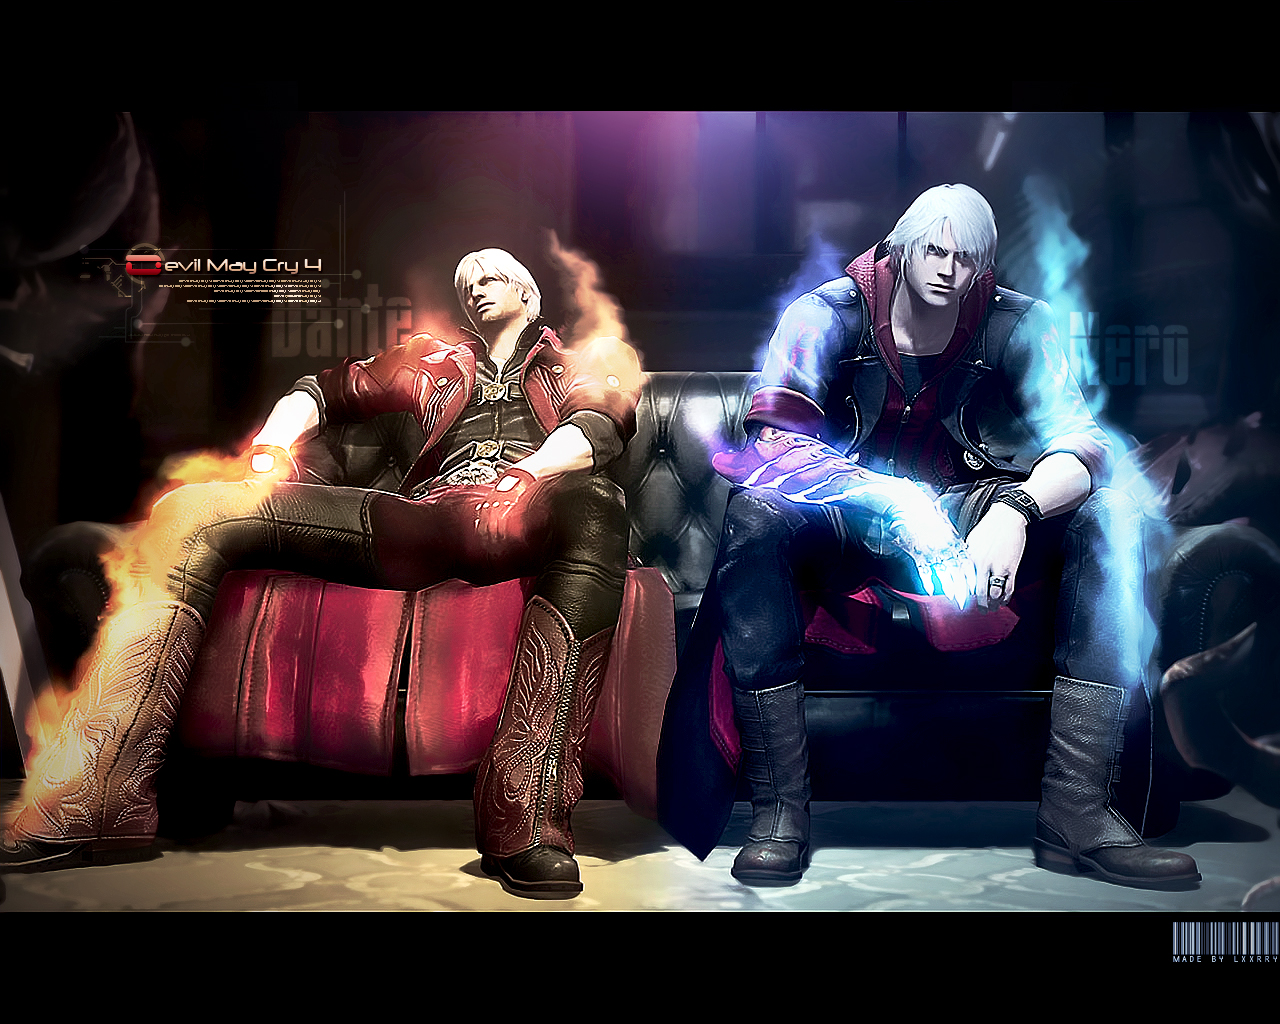 Devil May Cry Wallpaper By Lxxrry On Deviantart